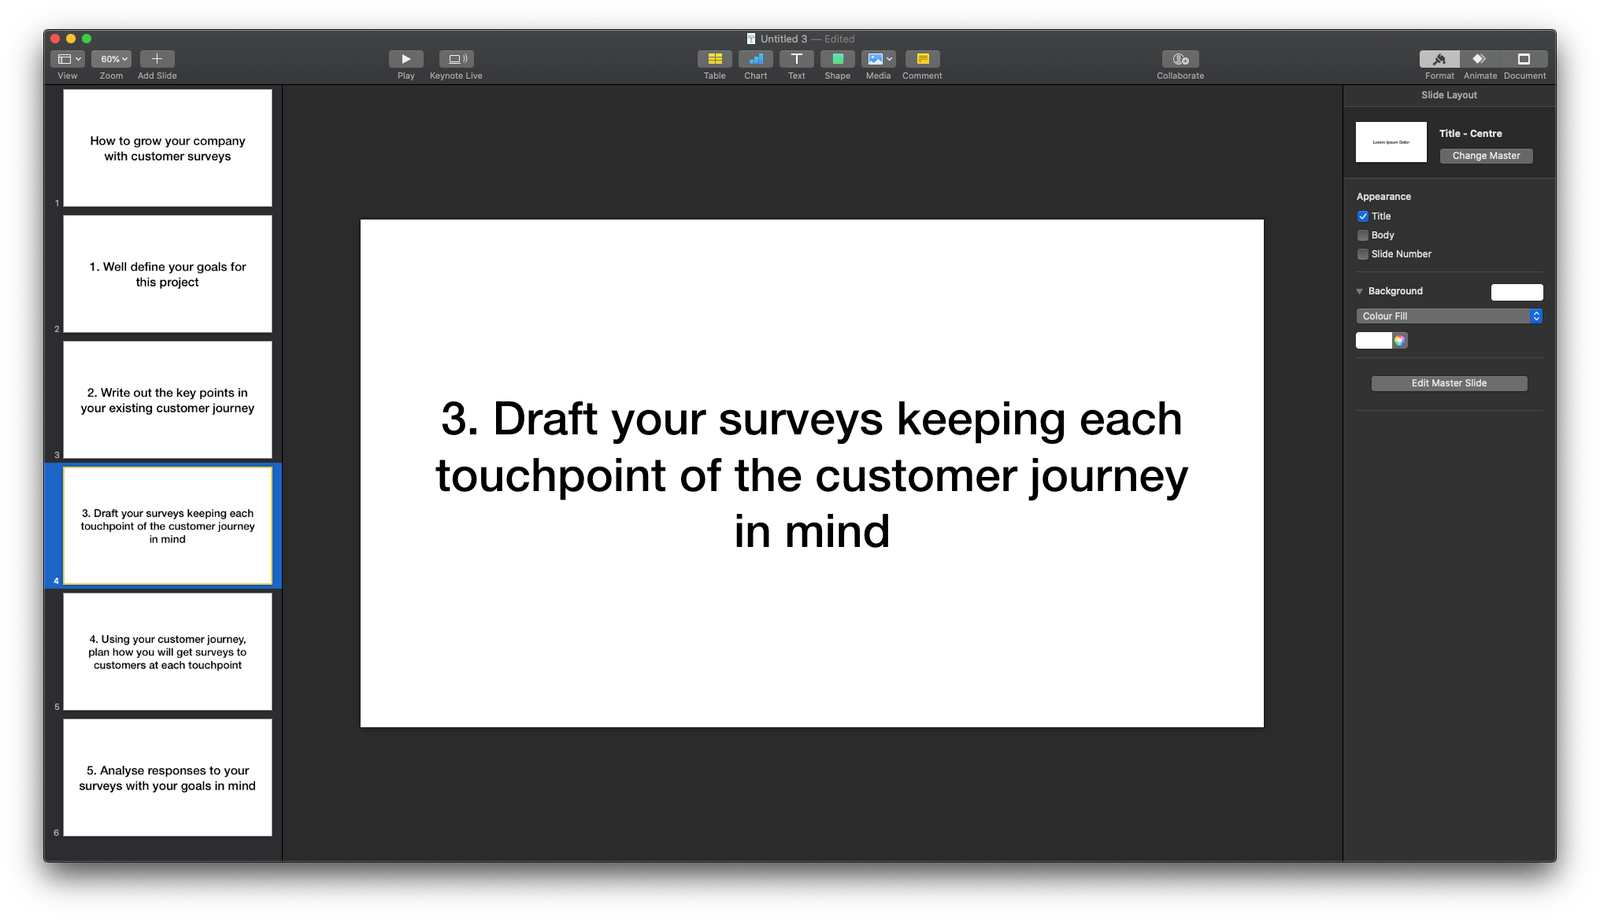 Basic structure of my slides